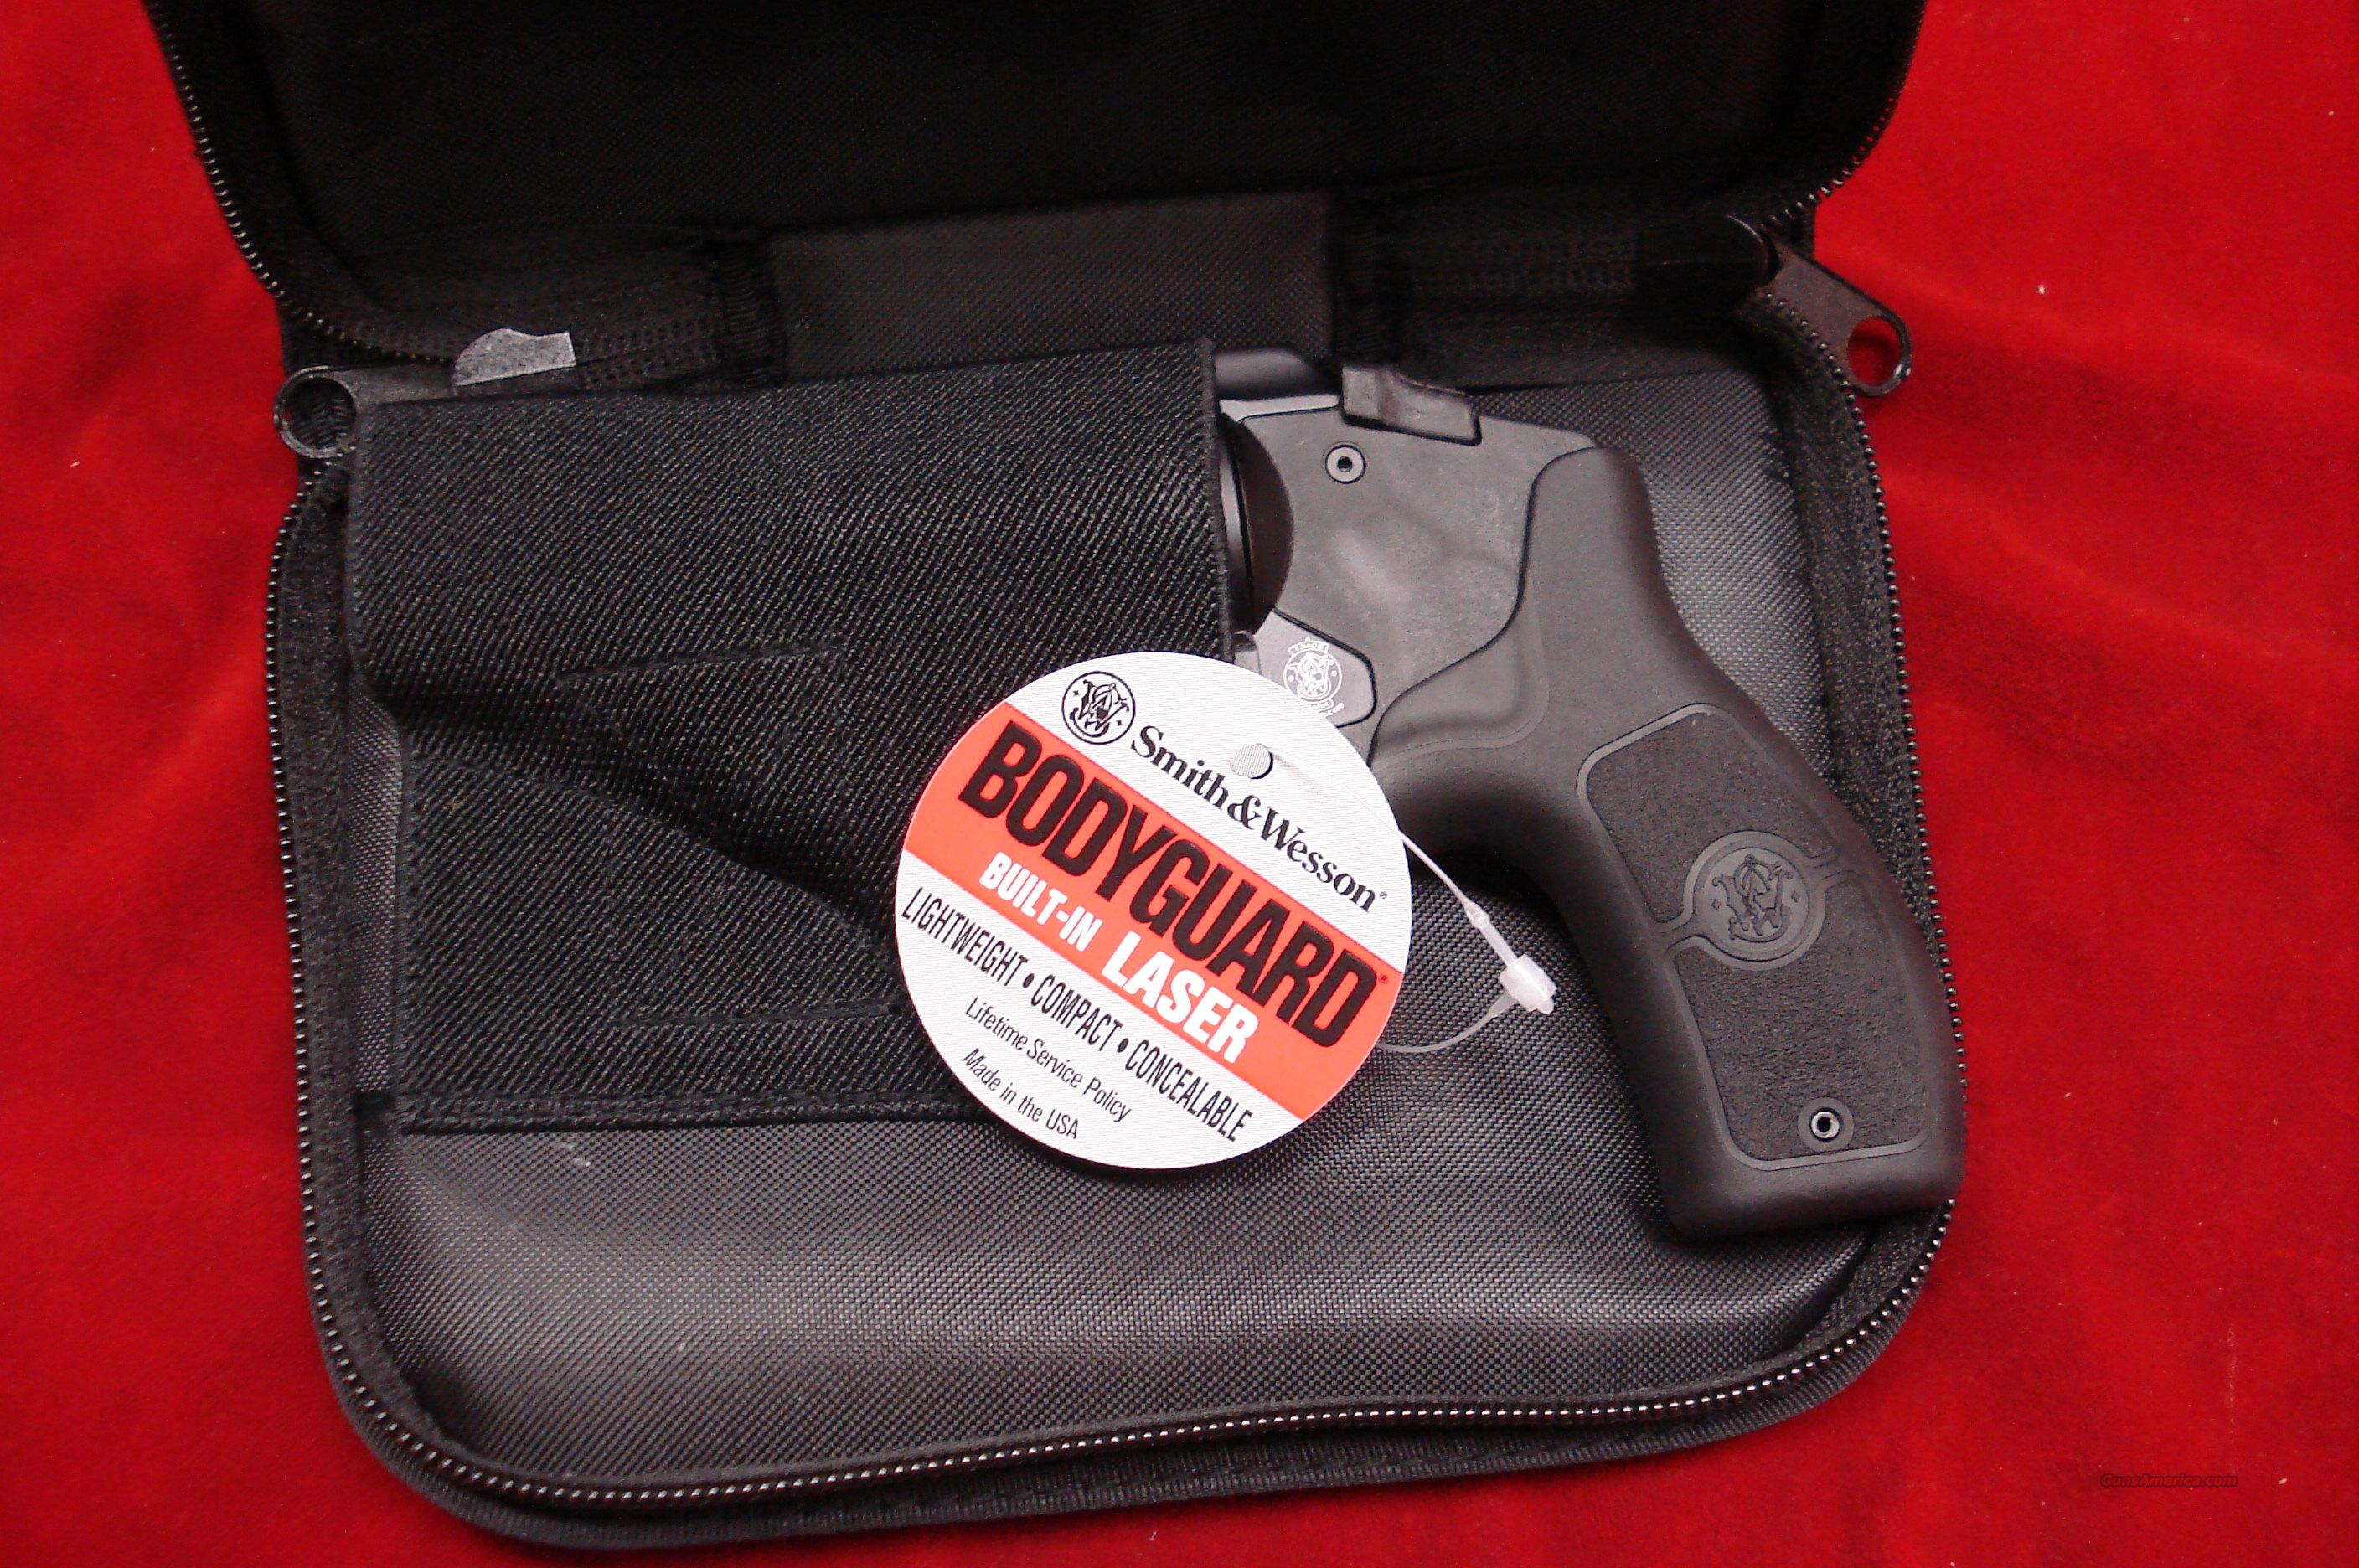 {{ SALE PRICE }} SMITH AND WESSON BODYGUARD 38SPL. WITH LASER NEW  Guns > Pistols > Smith & Wesson Revolvers > Pocket Pistols